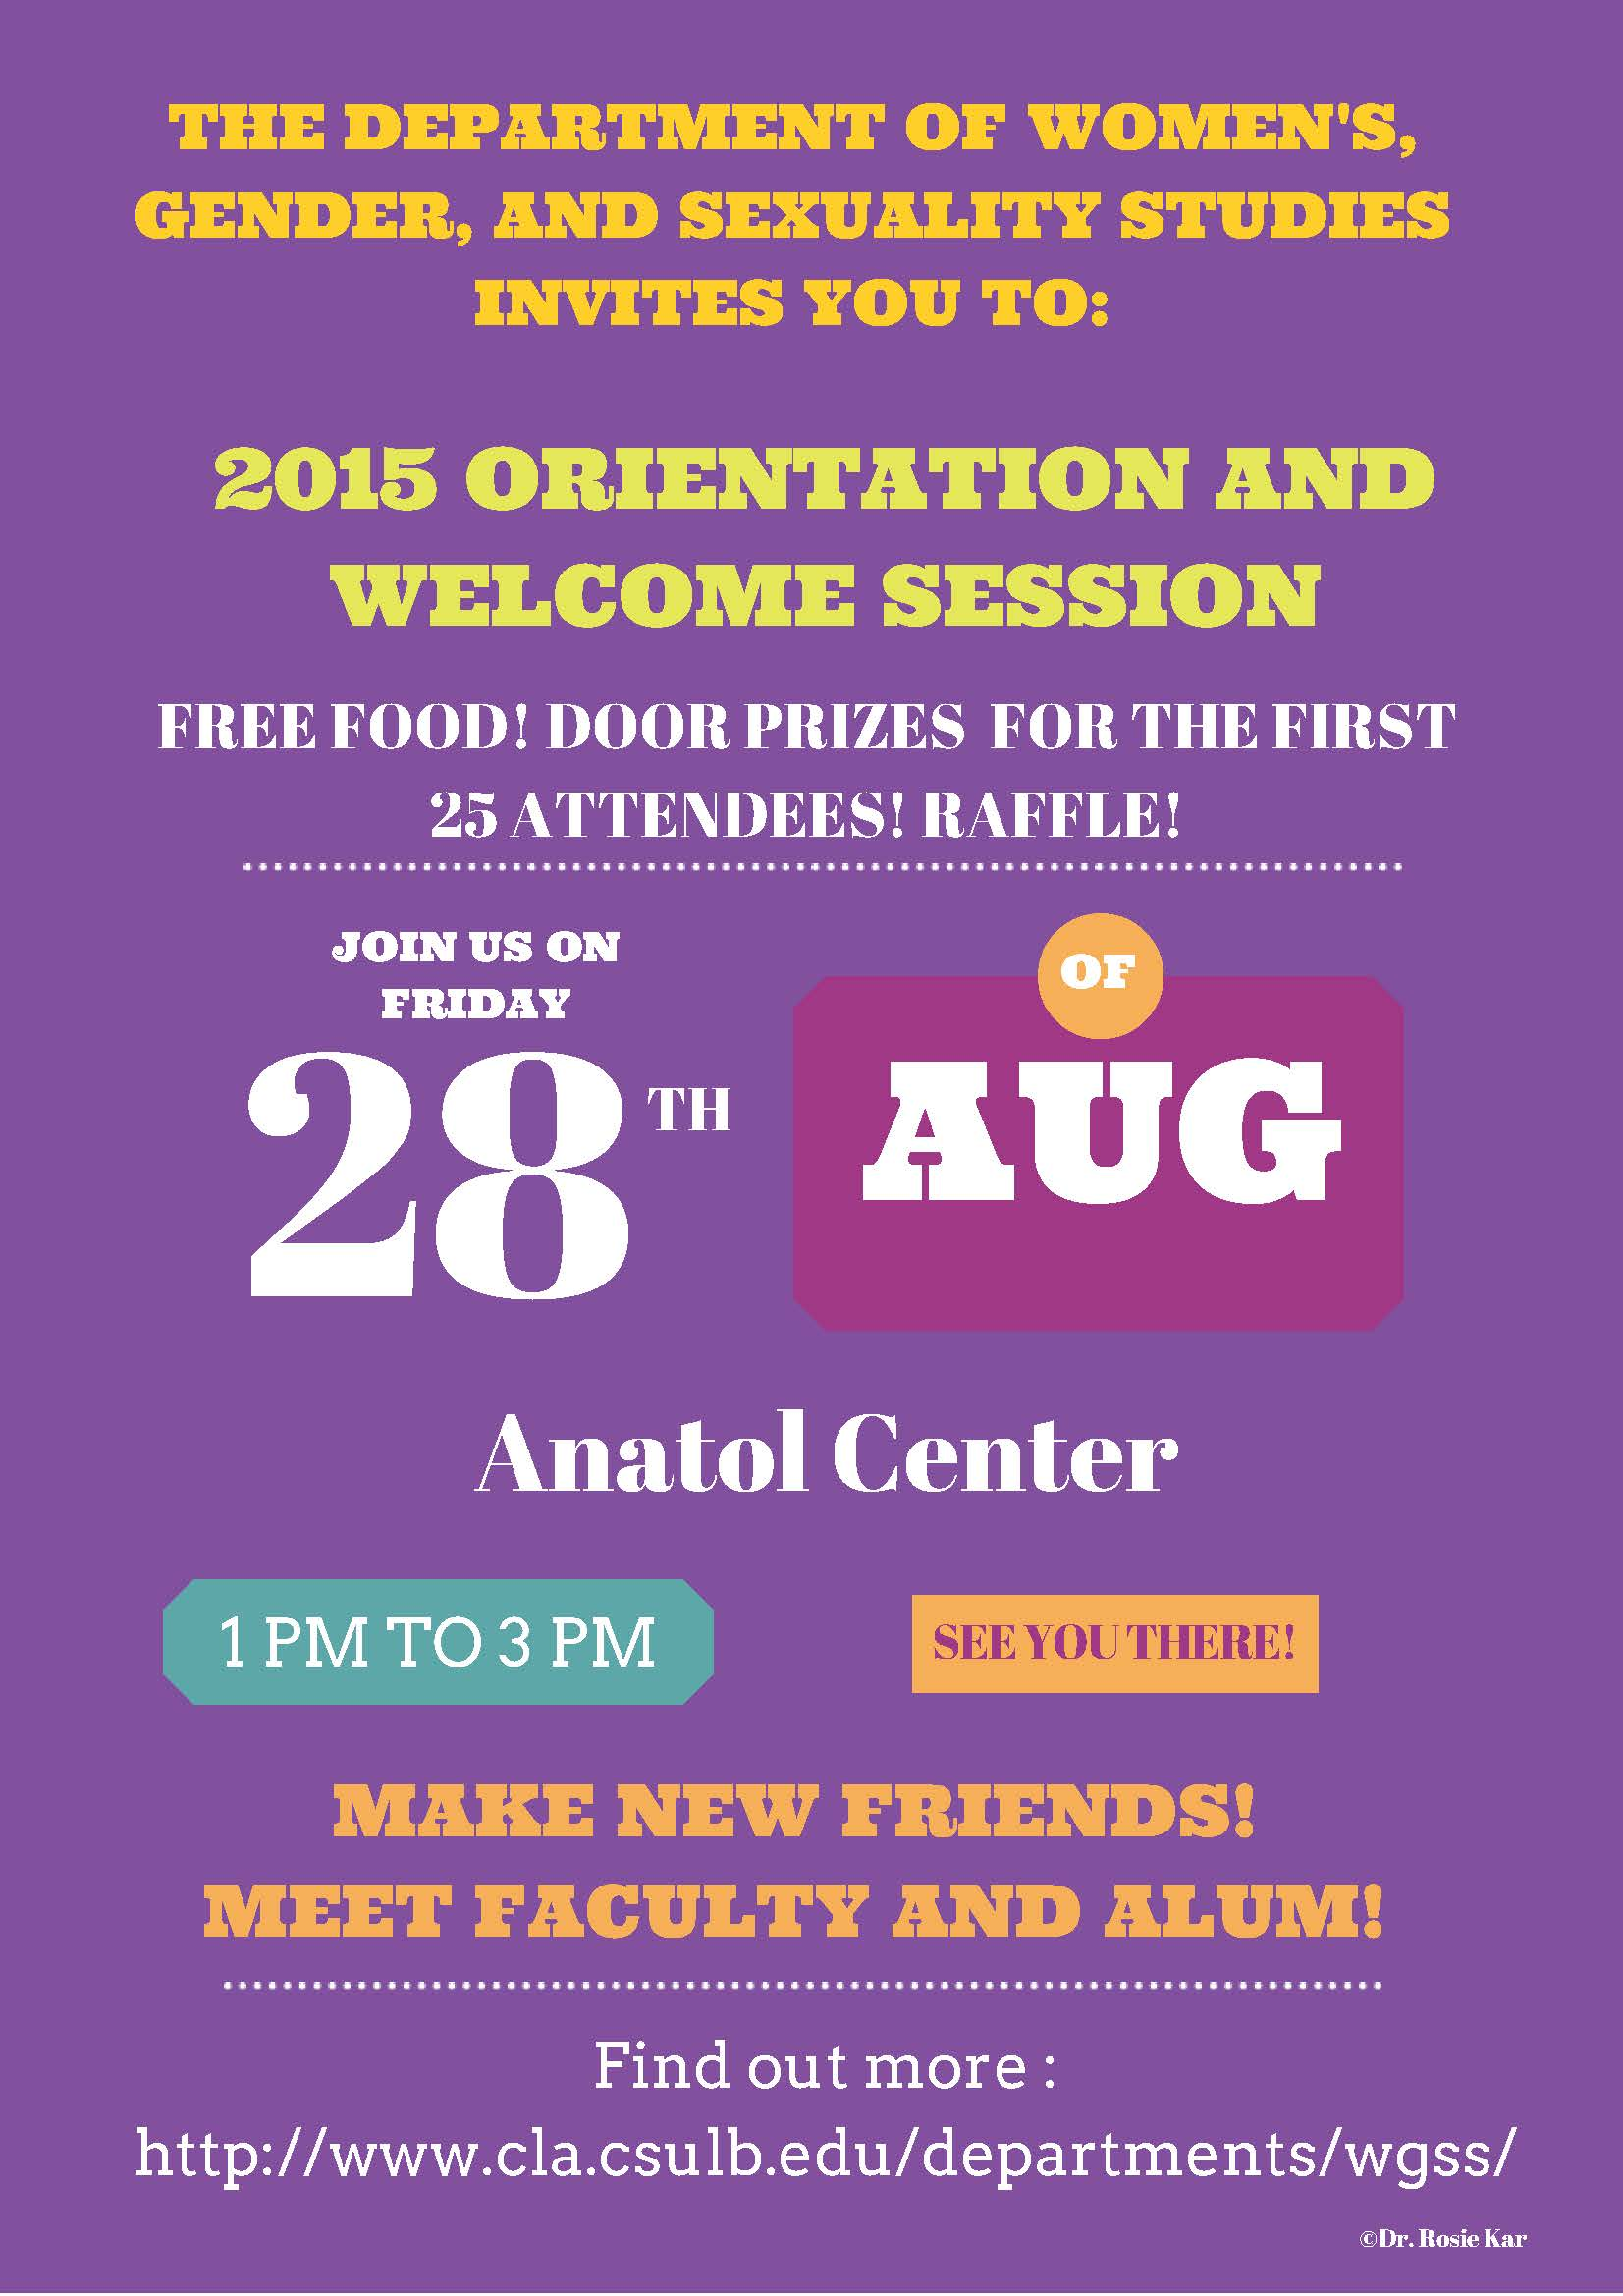 WGSS Fall 2015 orientation flyer